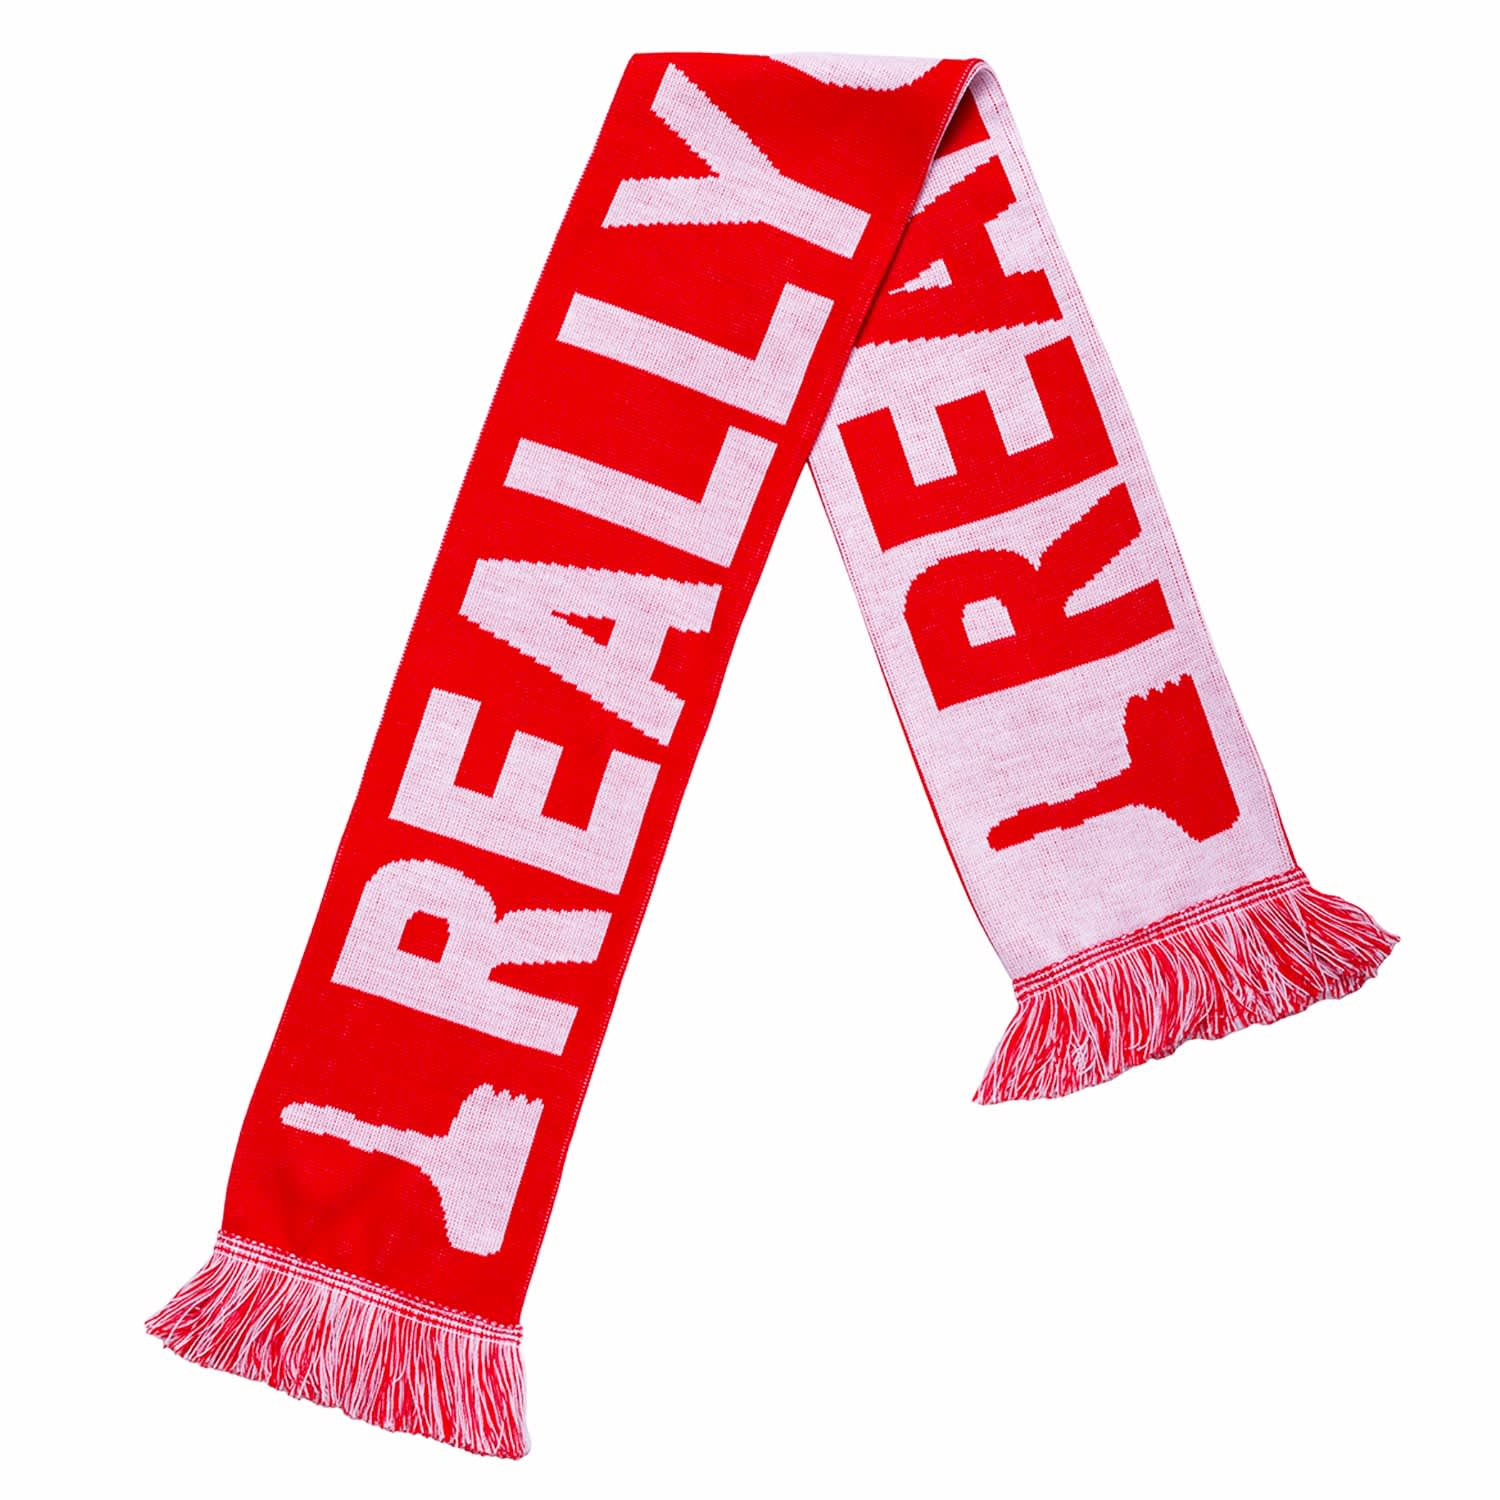 David Shrigley Really Good Football Scarf by Plinth